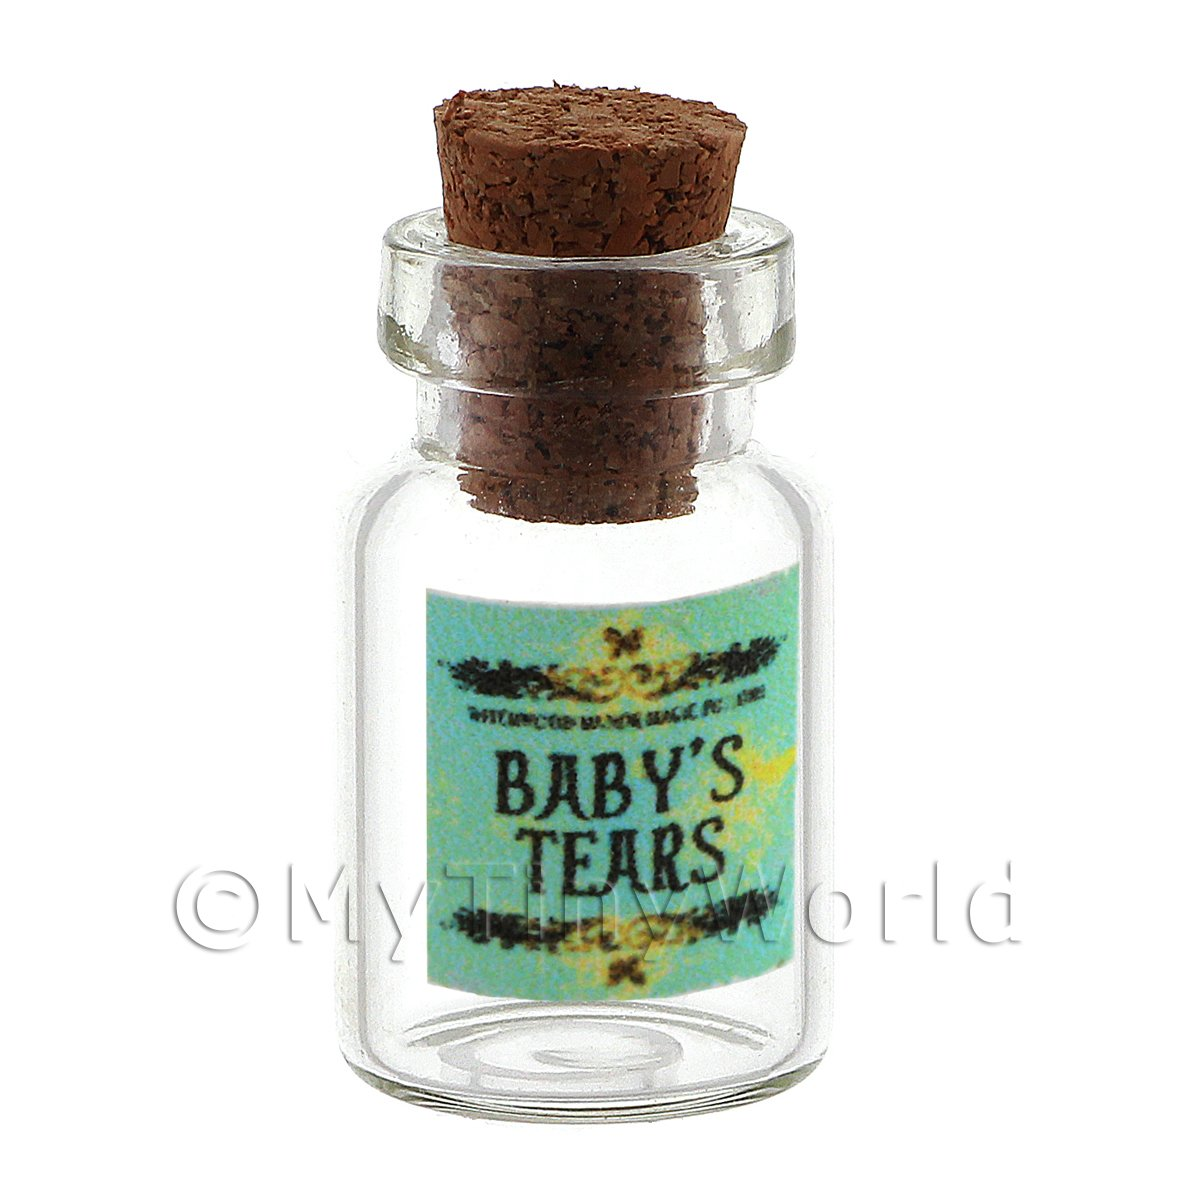 Dolls House Miniature Babys Tears Magic Storage Jar (Style 2)